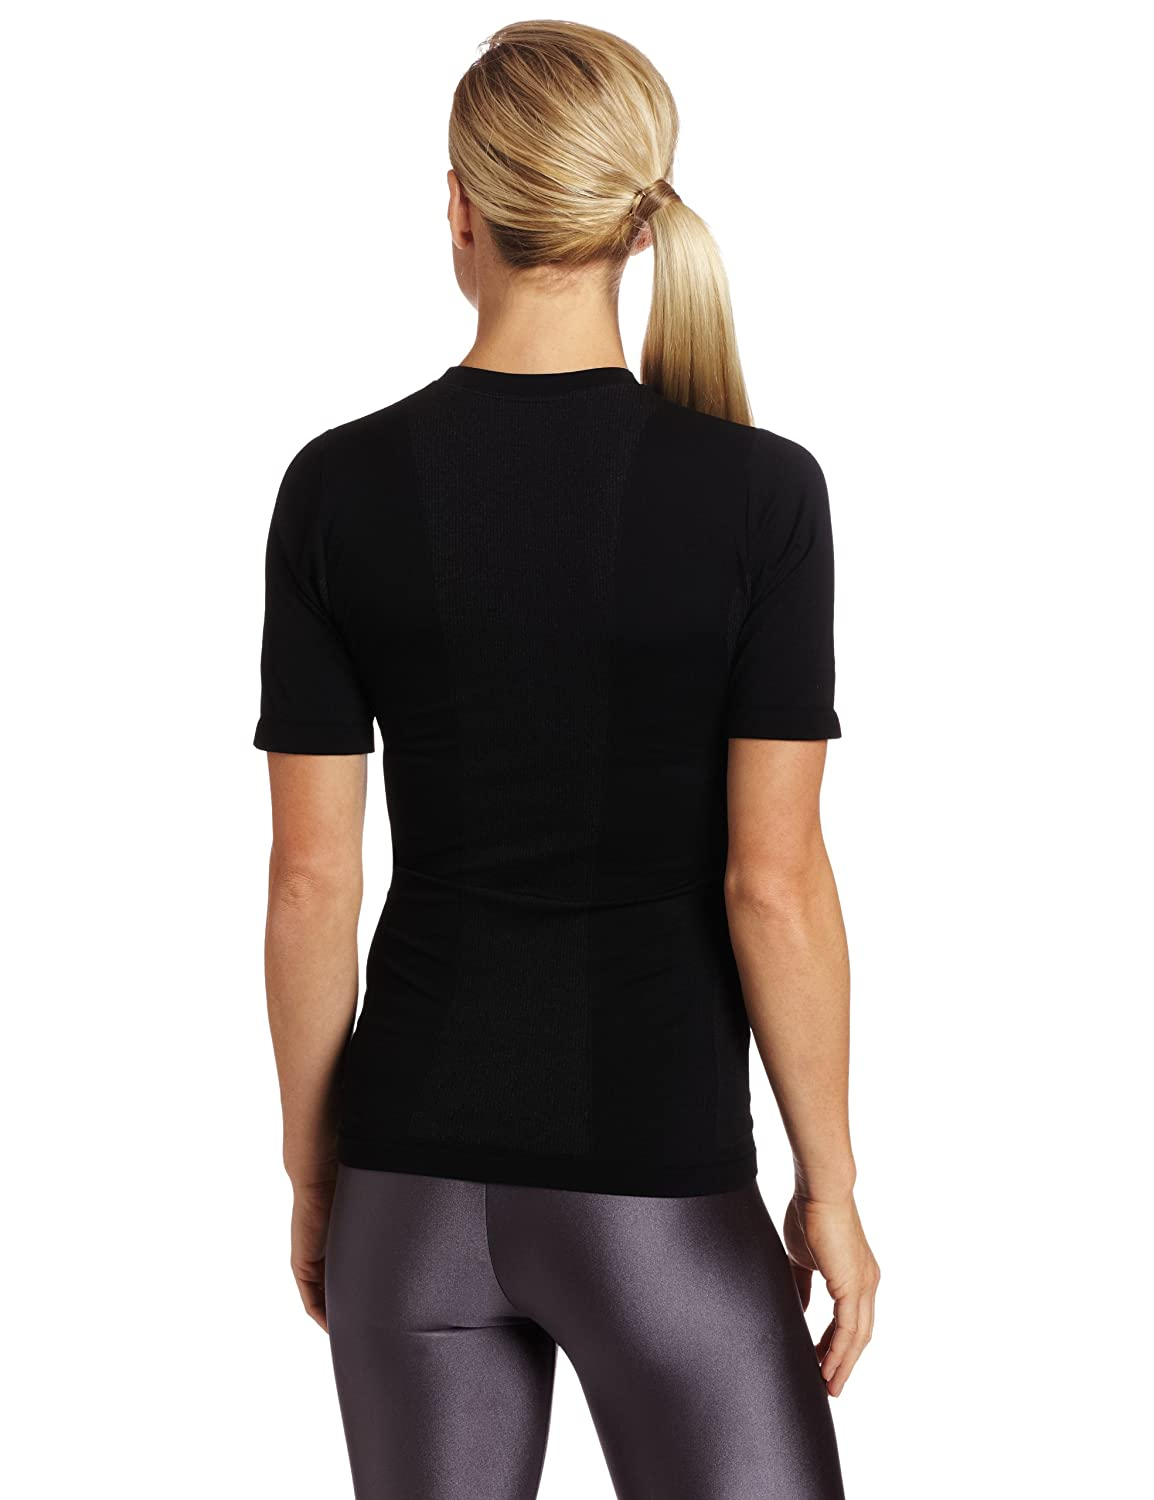 Amazon.com : Zensah Seamless Short Sleeve Compression Shirt - Black L/XL : Athletic Shirts : Sports & Outdoors